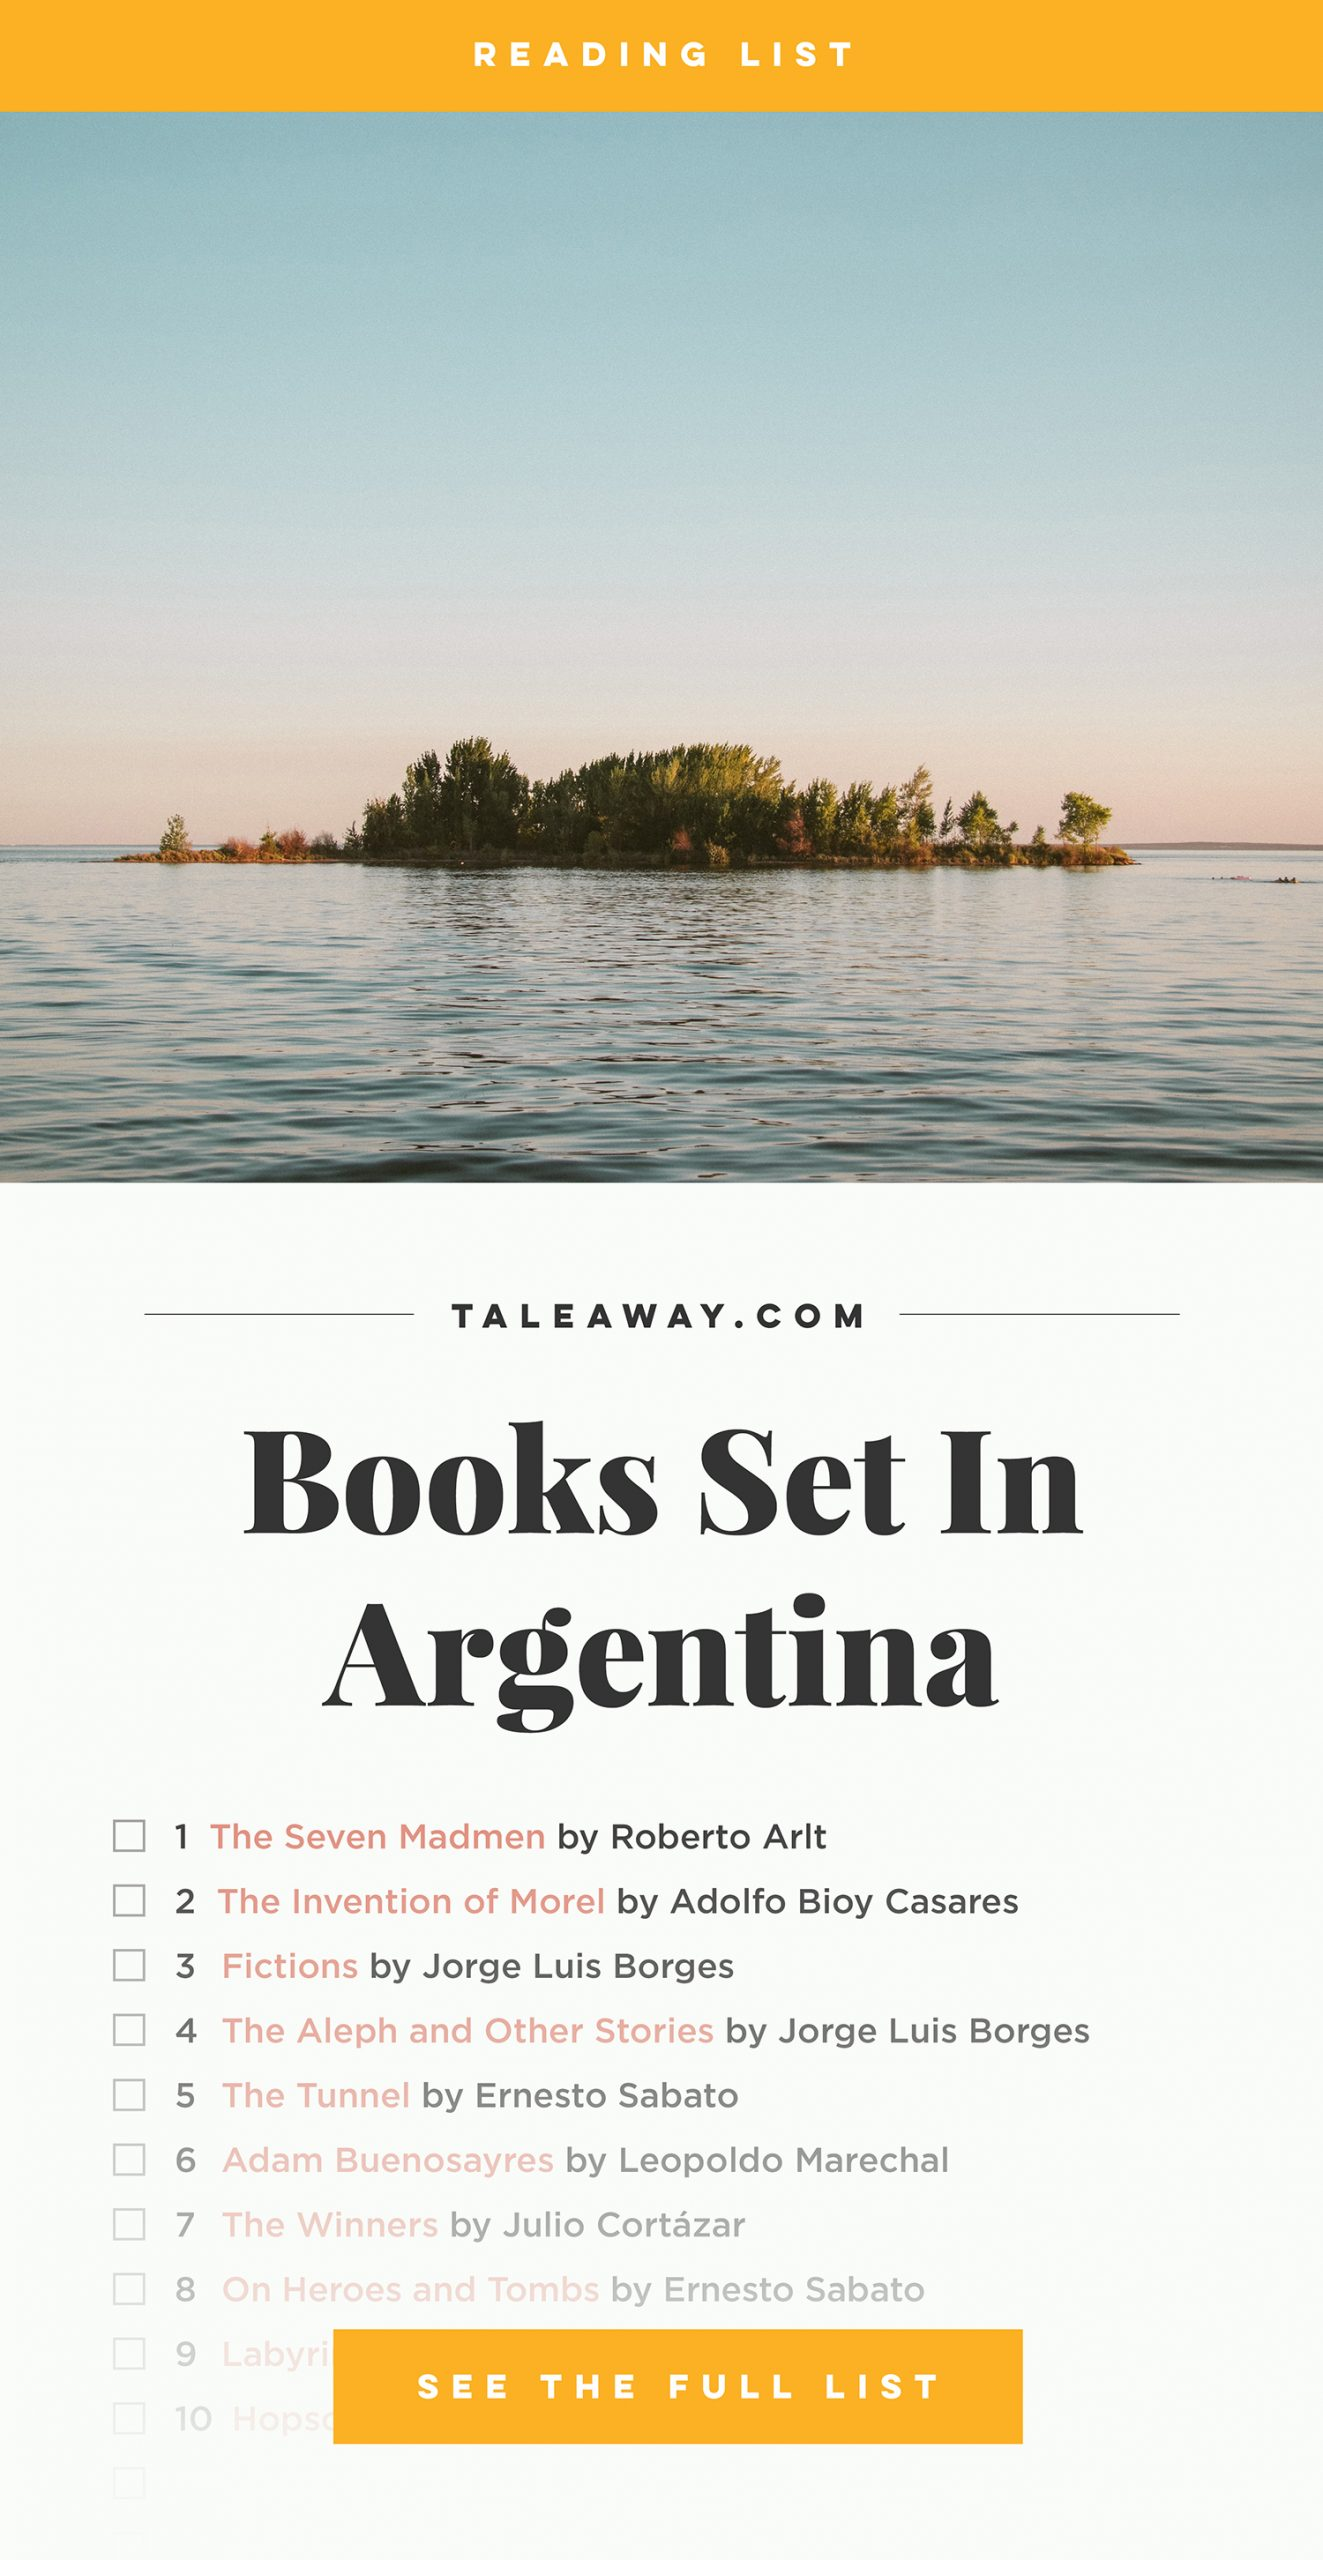 Books Set In Argentina - argentina books, argentina novels, argentina literature, argentina fiction, argentina, argentine authors, argentina travel, best books set in argentina, popular argentina books, argentina reads, books about argentina, argentina reading challenge, argentina reading list, argentina culture, argentina history, argentina travel books, argentina books to read, novels set in argentina, books to read about argentina, argentina packing list, south america books, book challenge, books and travel, travel reading list, reading list, reading challenge, books to read, books around the world